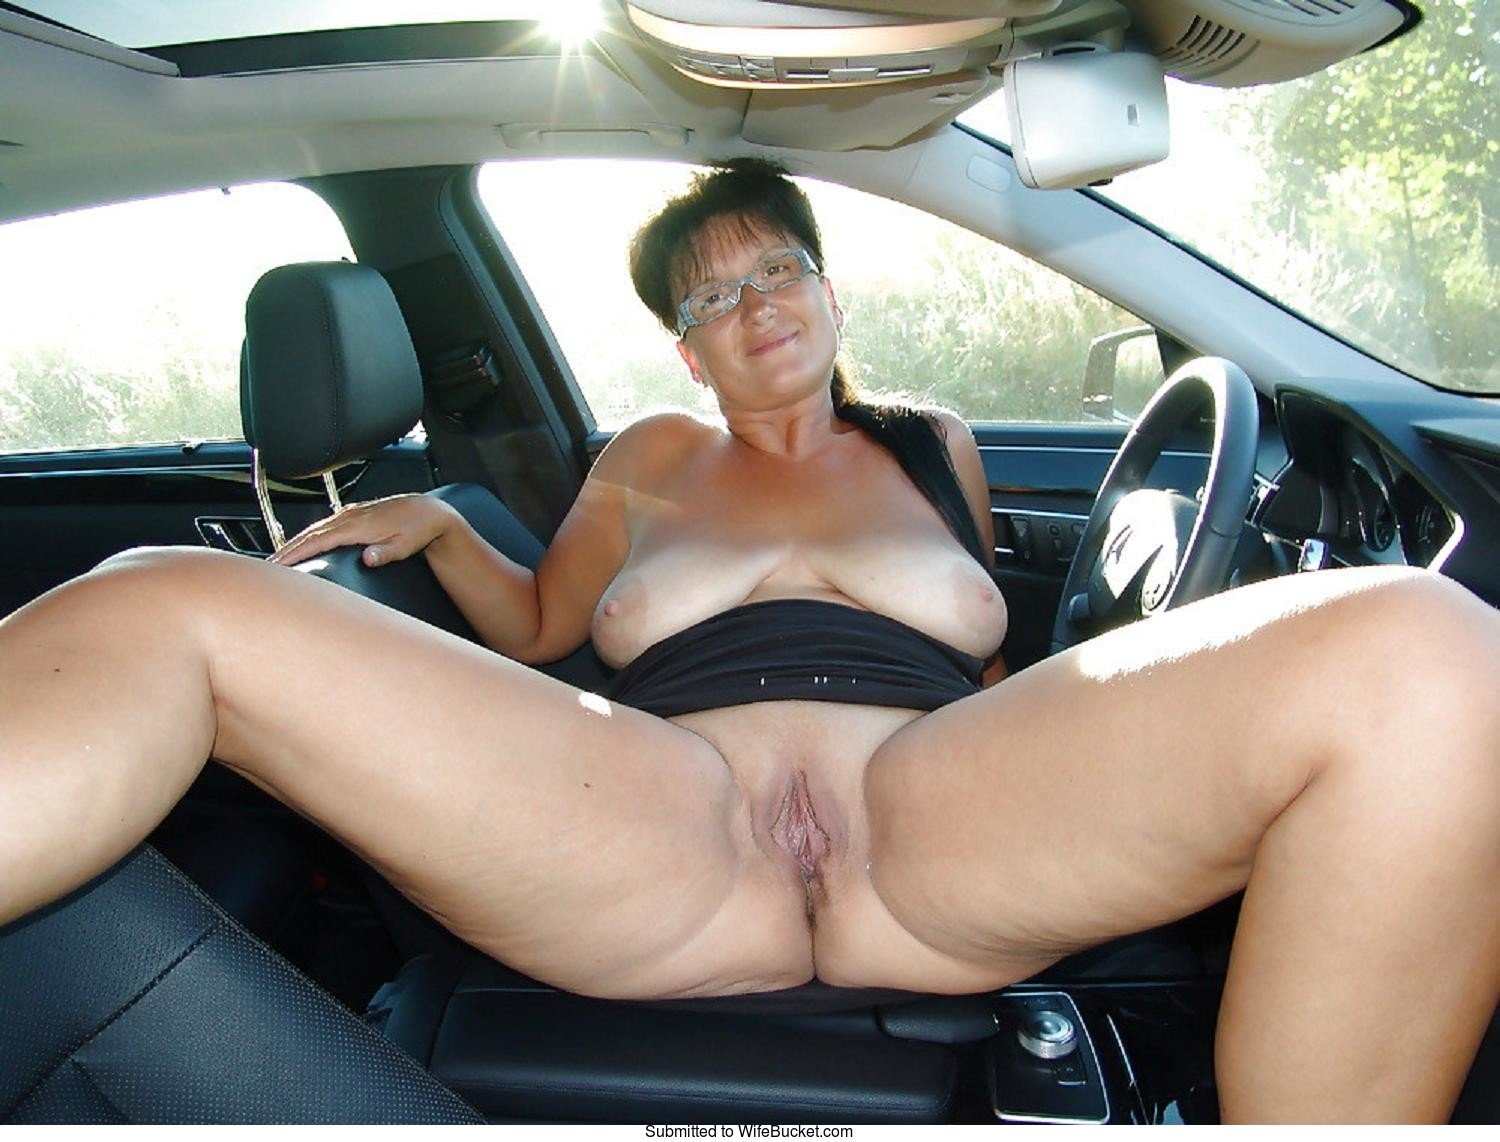 Remarkable milf shows pussy while driving